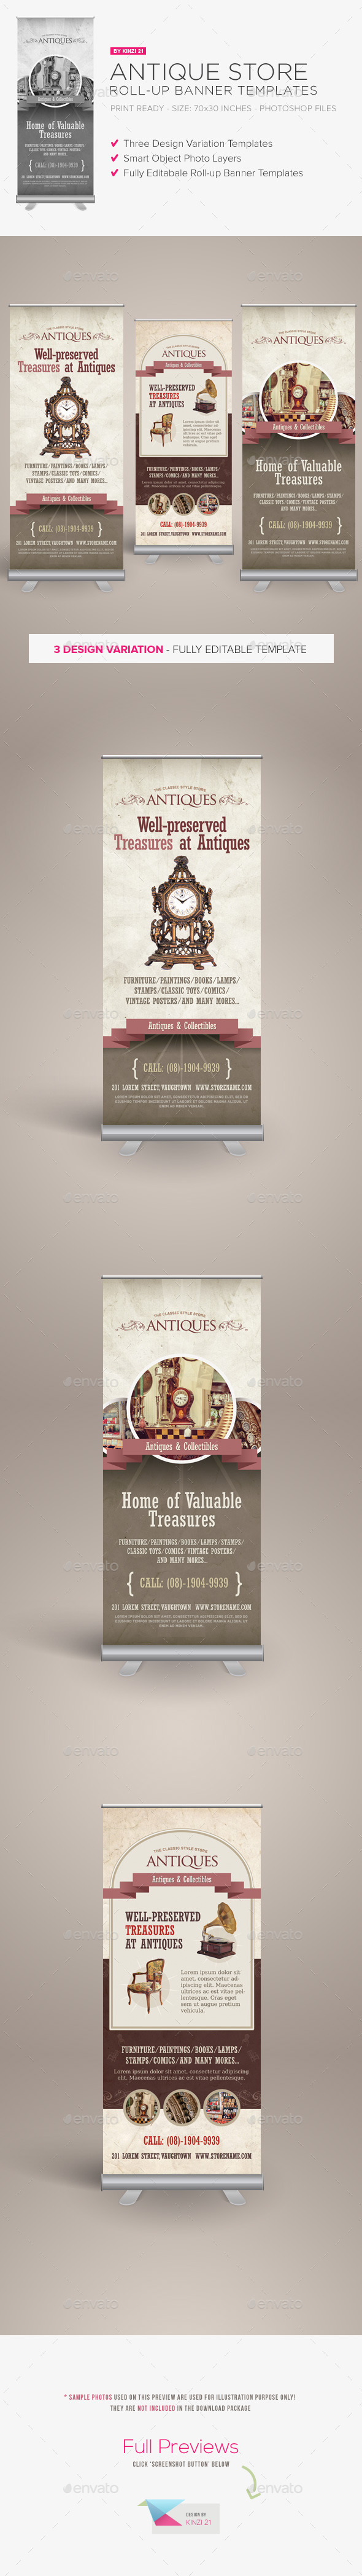 GraphicRiver Antique Store Roll-up Banners 10015458